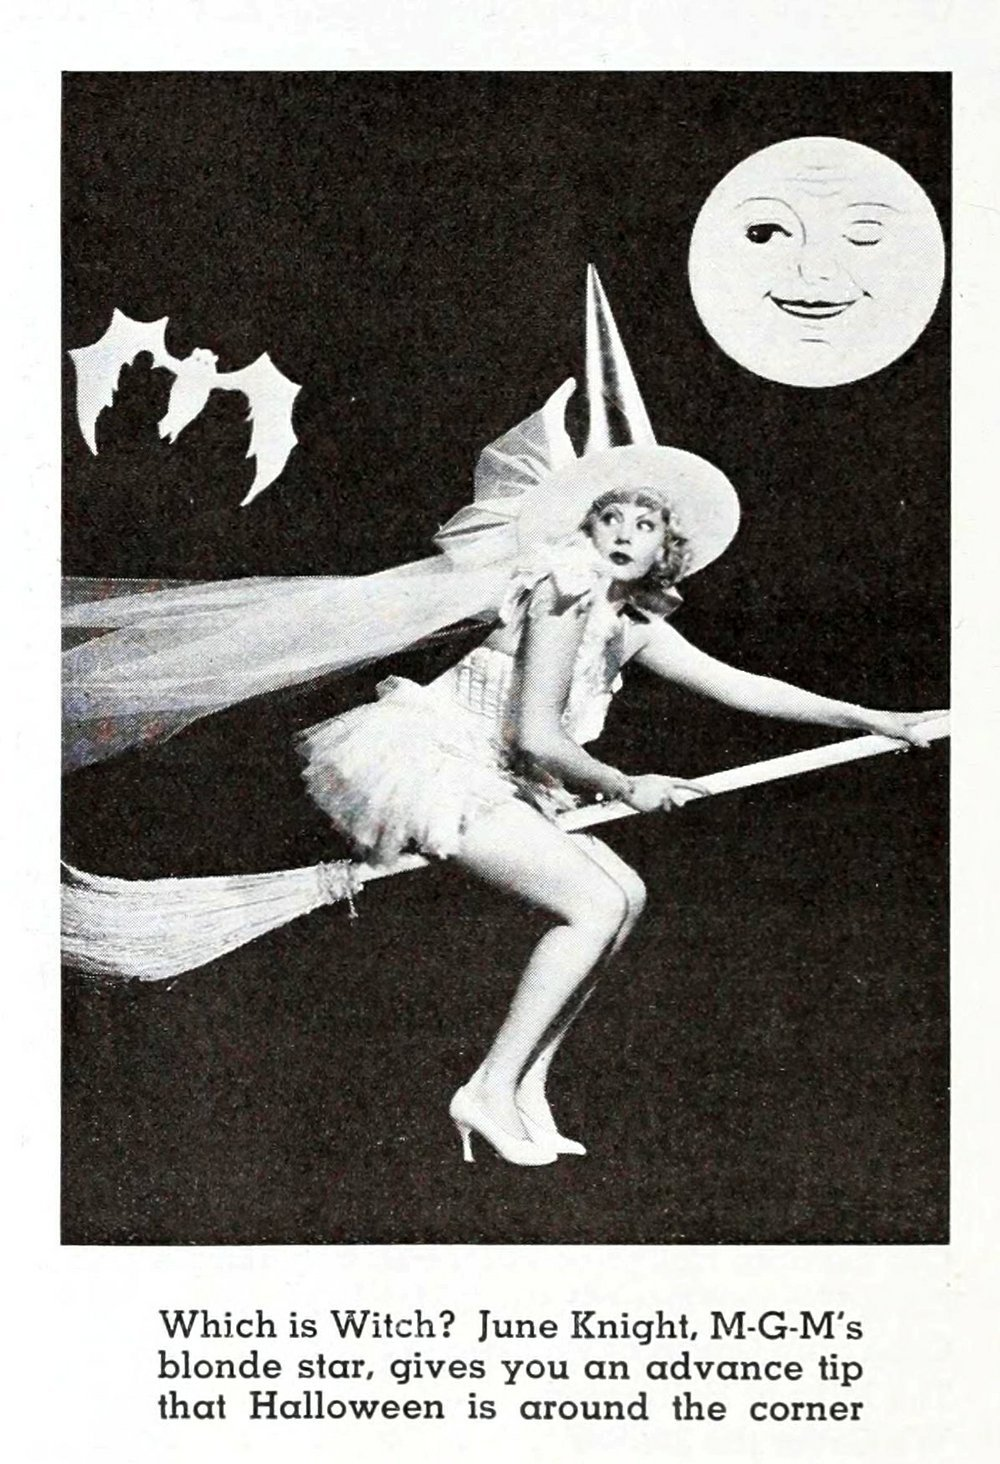 It's only a paper moon winking at the bewitching June Knight.